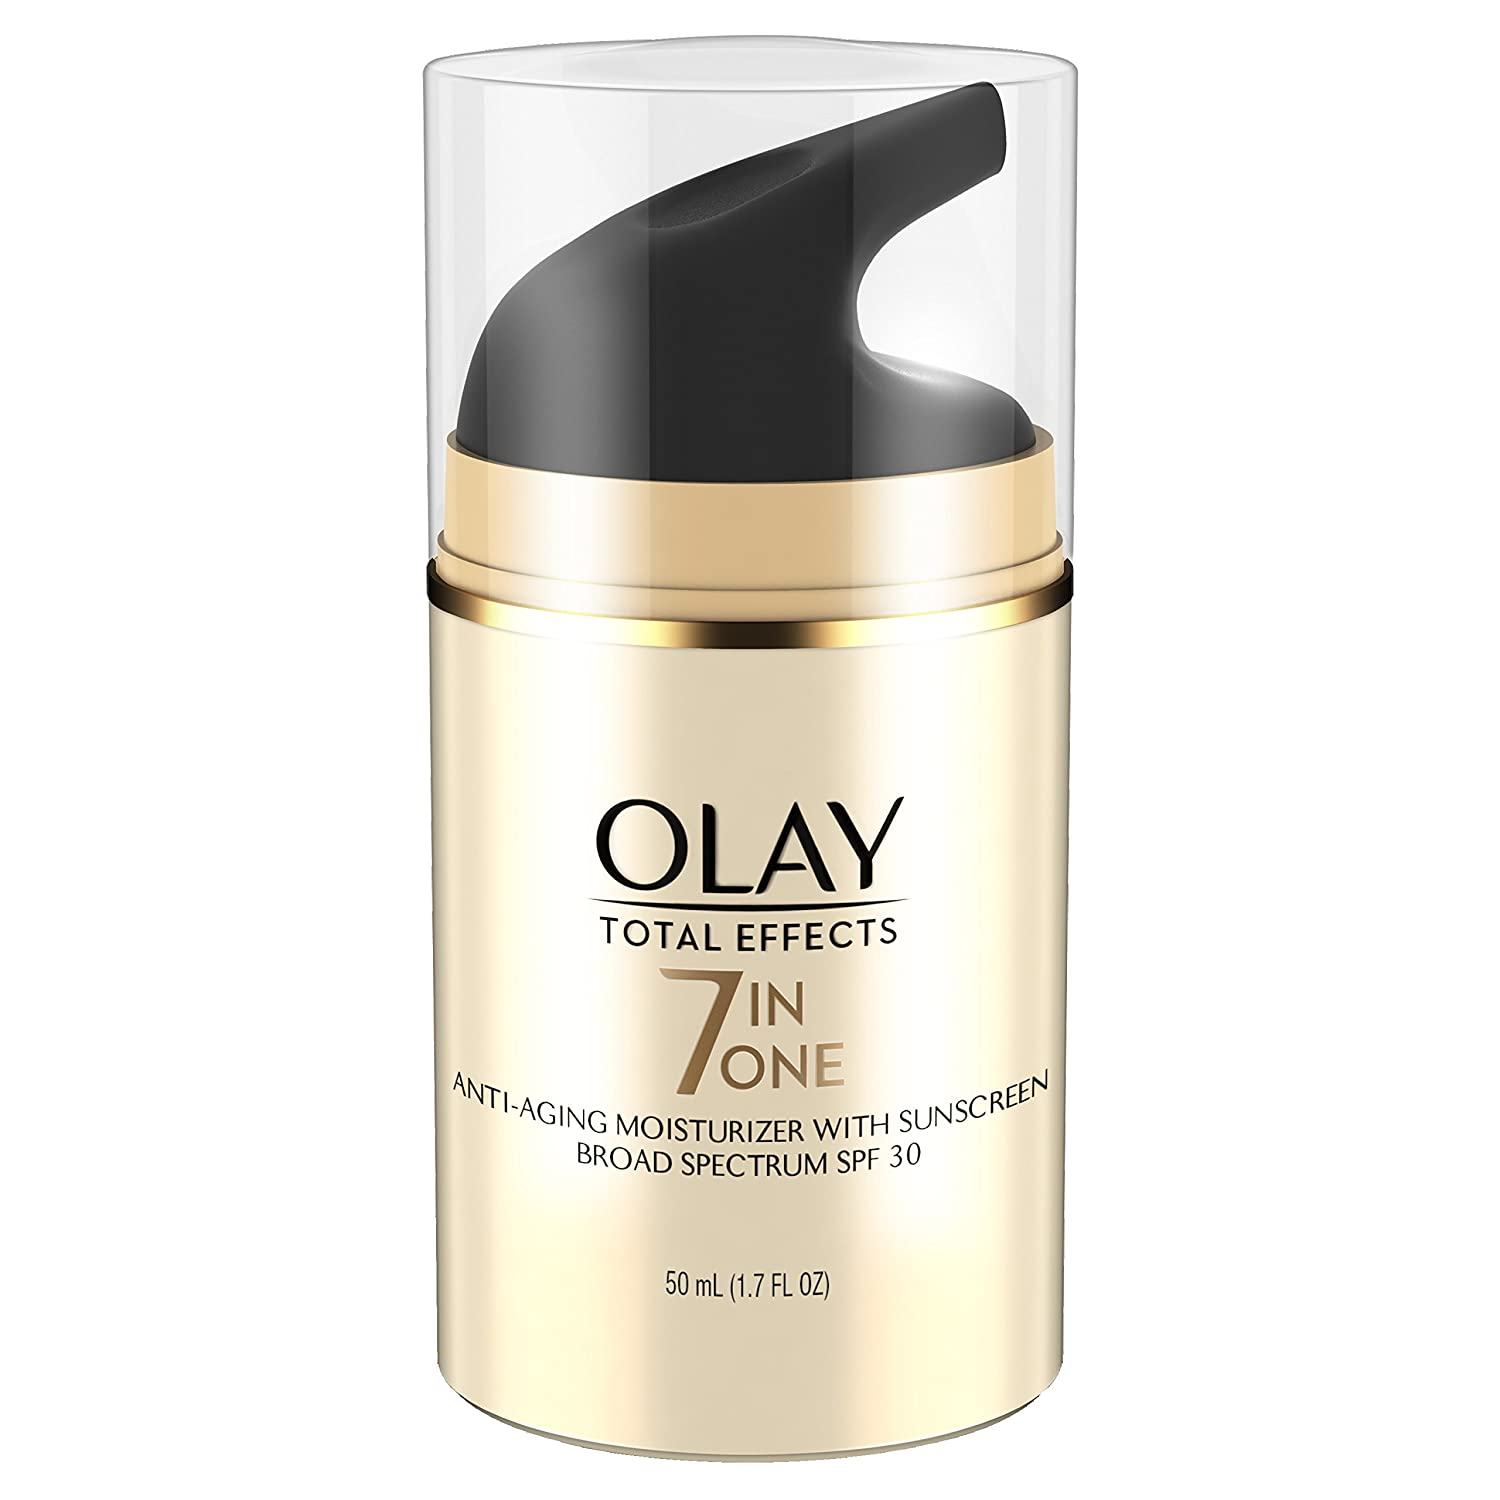 Total Effects 7 in 1 Anti-Aging UV Moisturizer SPF 15 by Olay for Women - 1.7 oz Moisturizer NA